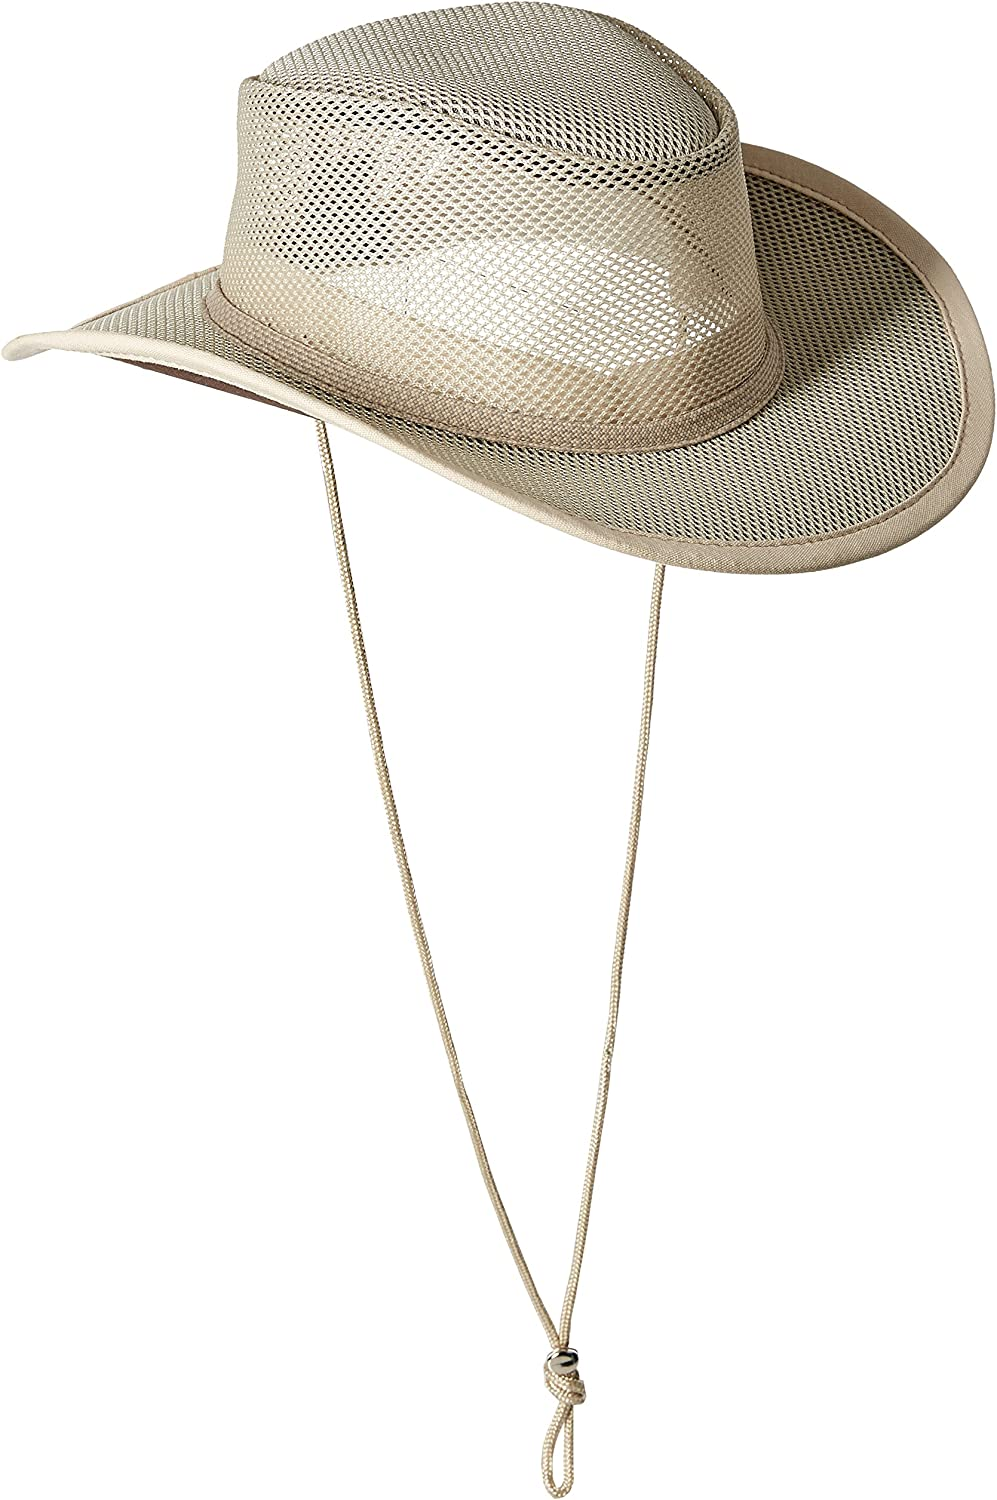 Stetson Men's Mesh Hat Covered Max shipfree 60% OFF